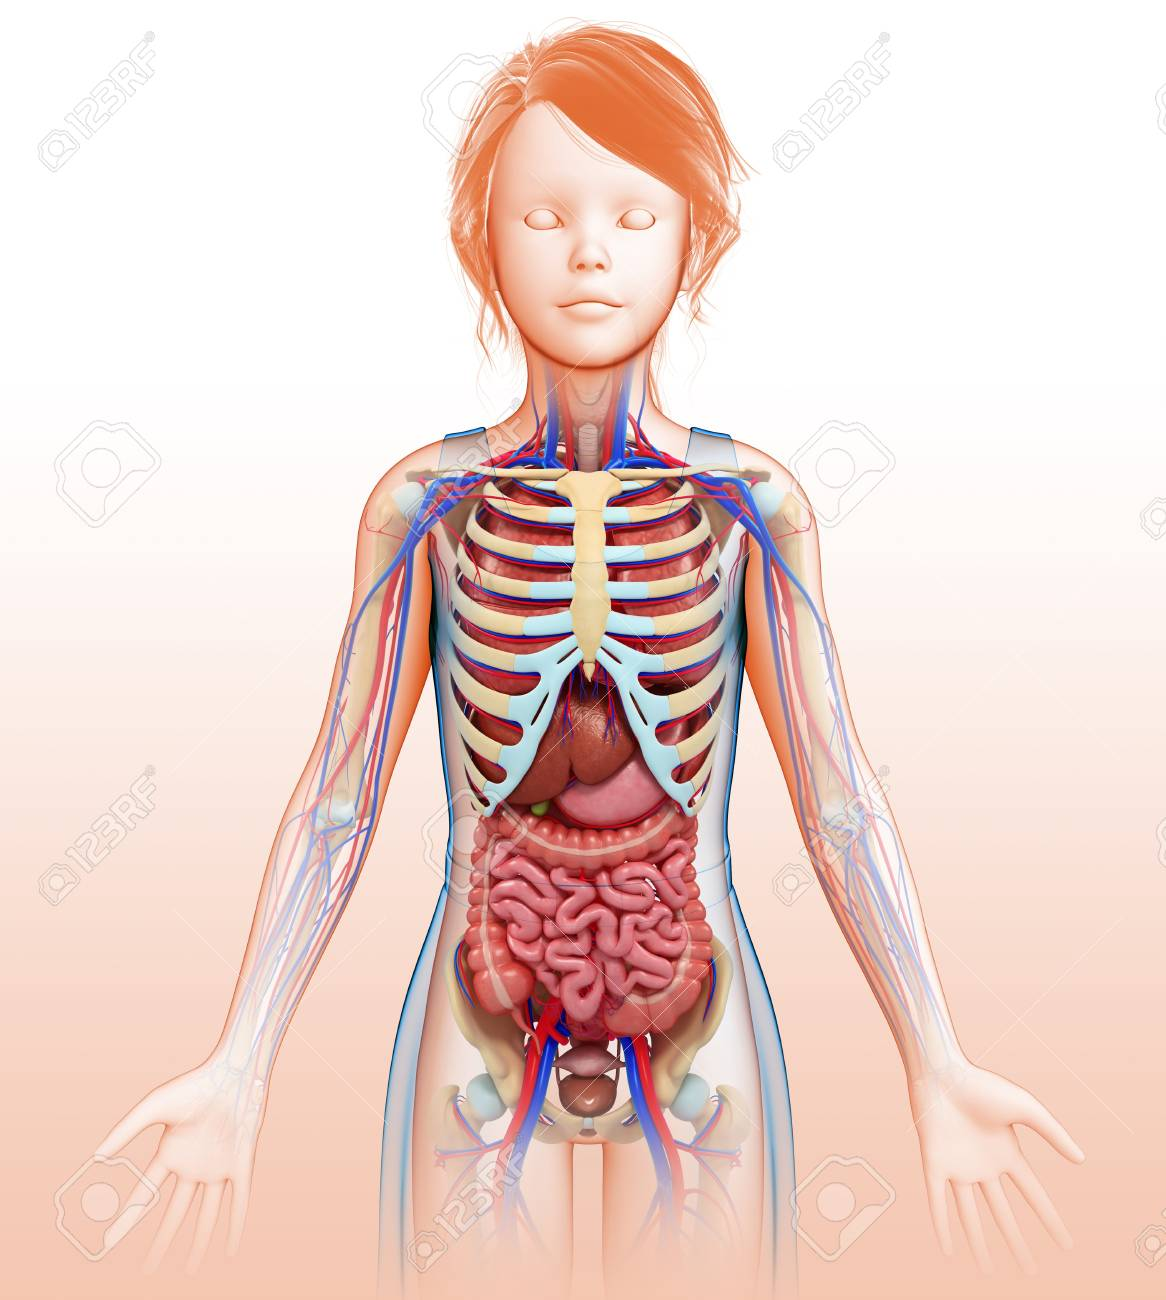 Female Anatomy, Illustration Stock Photo, Picture And Royalty Free ...